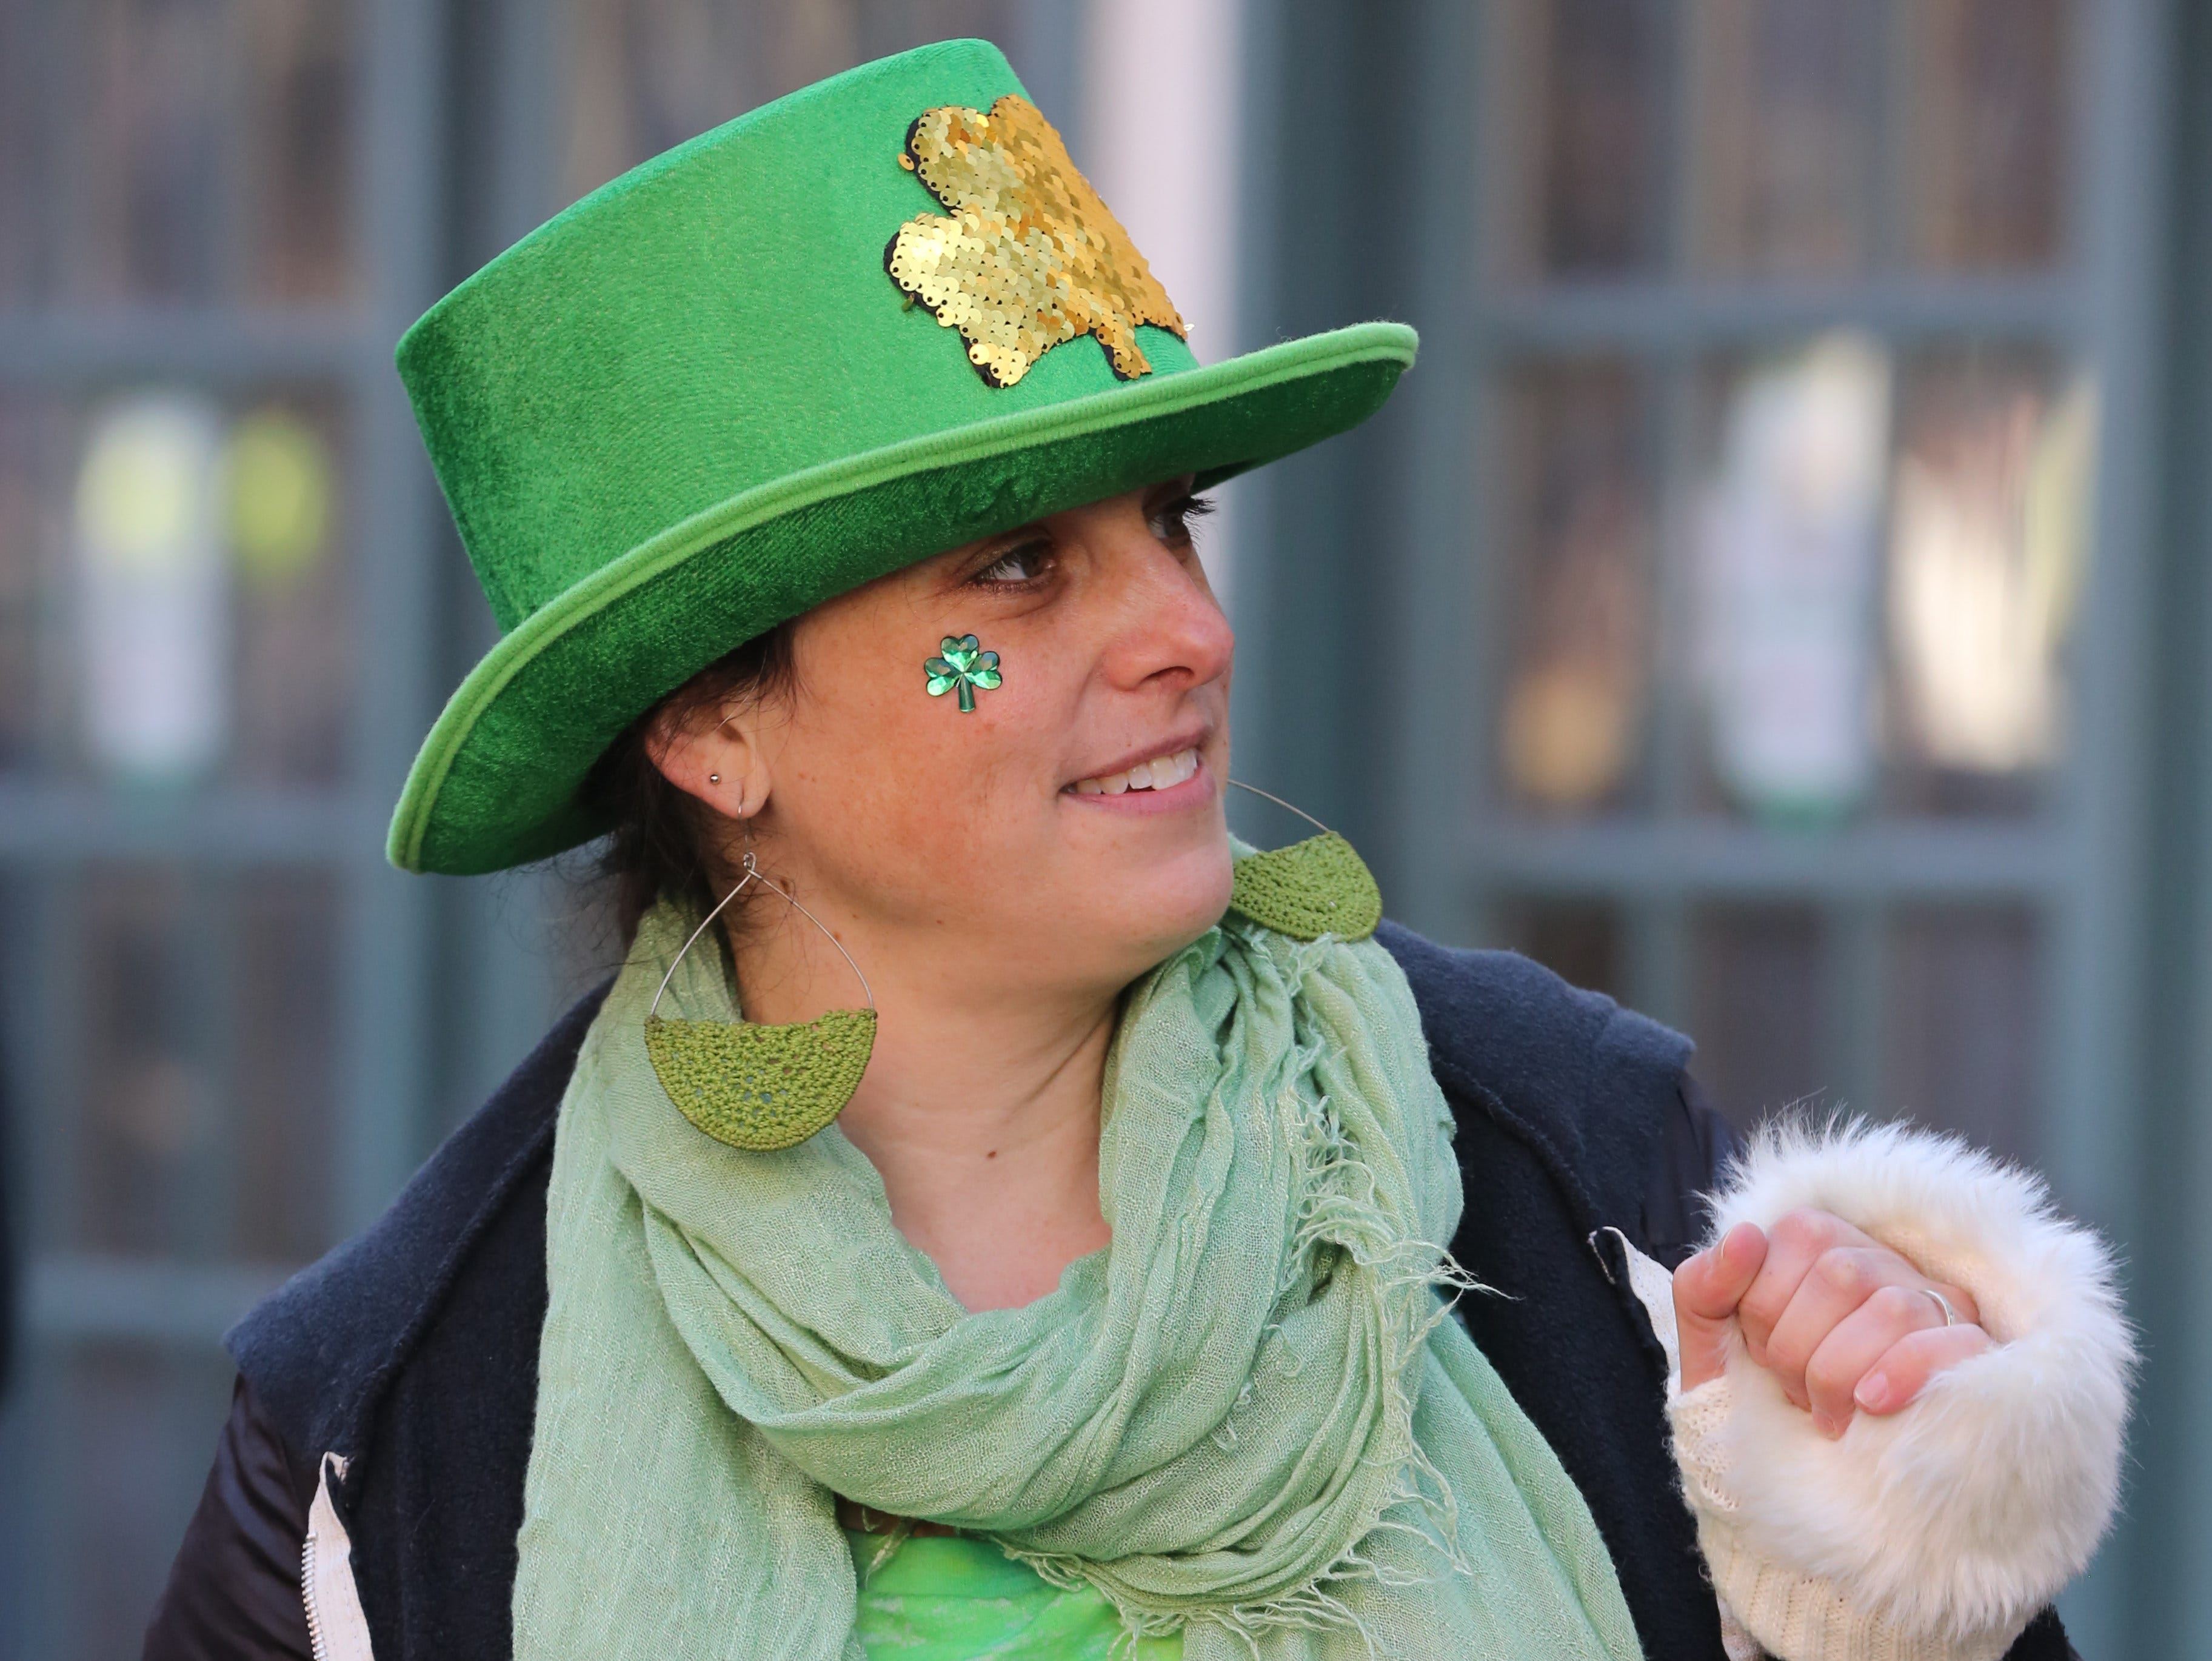 Michele Farrie dances during the 30th Annual Peekskill St. PatrickÕs Day Parade in Peekskill March 9, 2019.